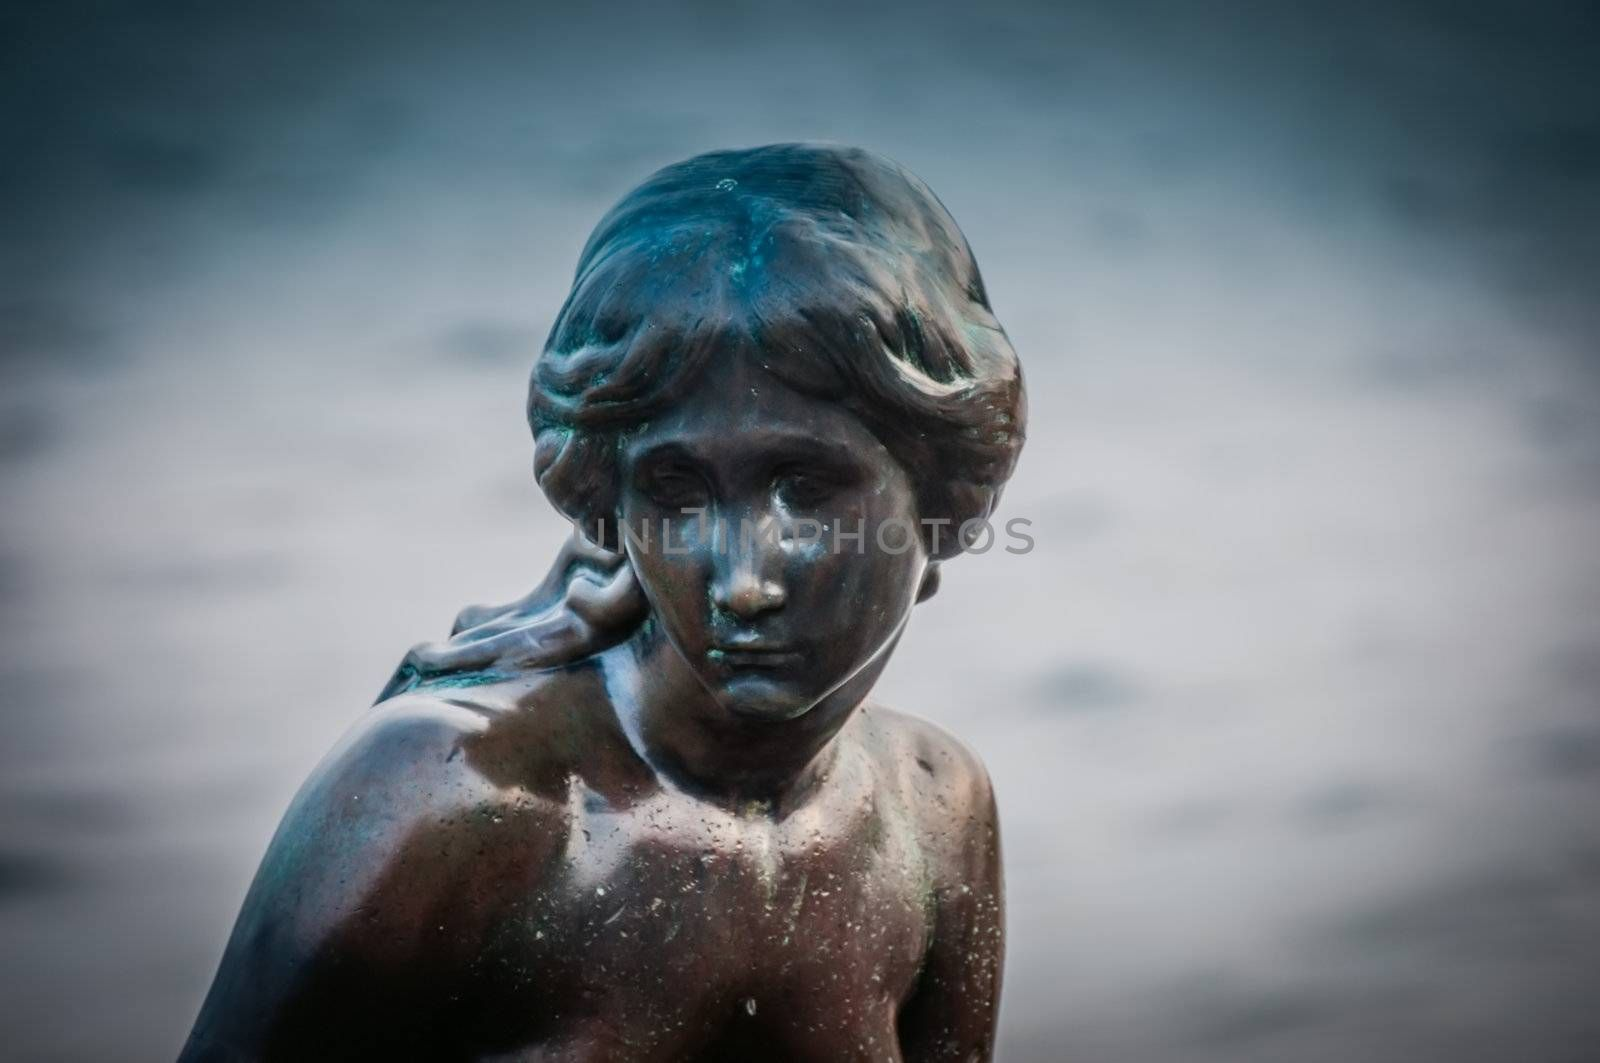 COPENHAGEN, DENMARK - JUNE 11: Mermaid statue in Copenhagen, Denmark, which is tourist attraction is build in 1913, based on the fairy tale of the same name by Hans Christian Andersen pictured on June 11, 2011